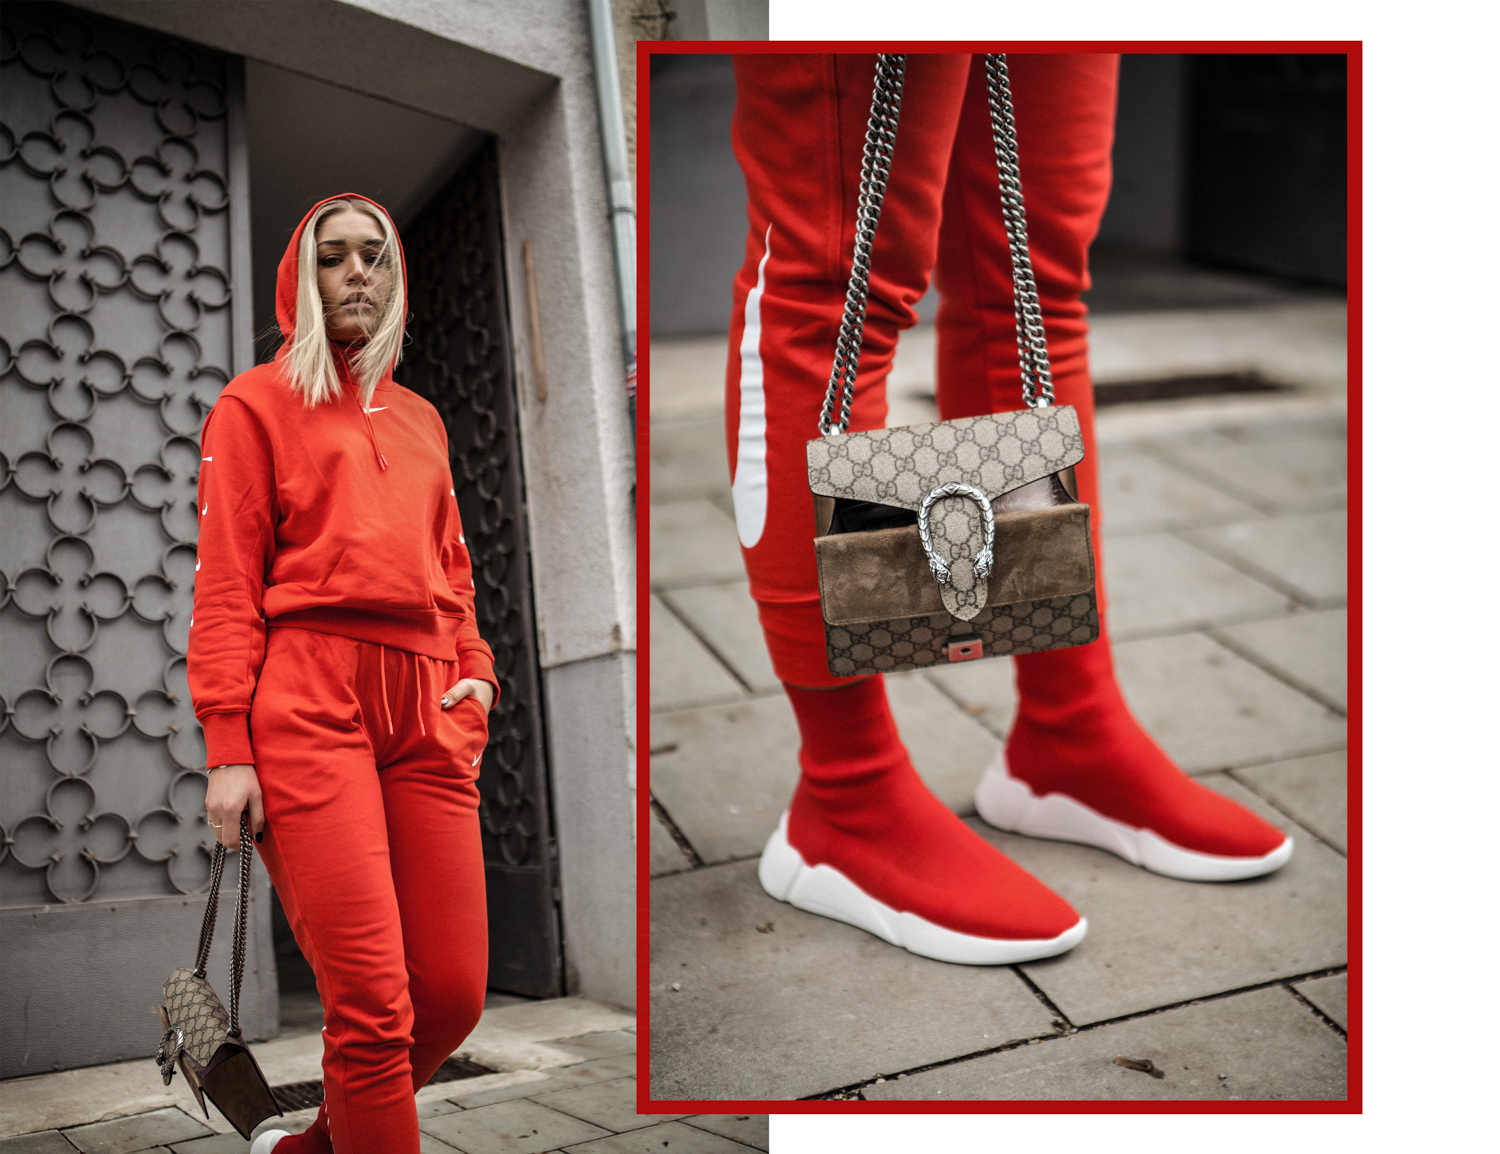 Lauralamode Outfit Nike Look Colors Of California Gucci Junkyard Ootd Outfit Of The Day Inspo Inspiration Berlin Blogger Fashionblogger Modeblogger Deutschland5